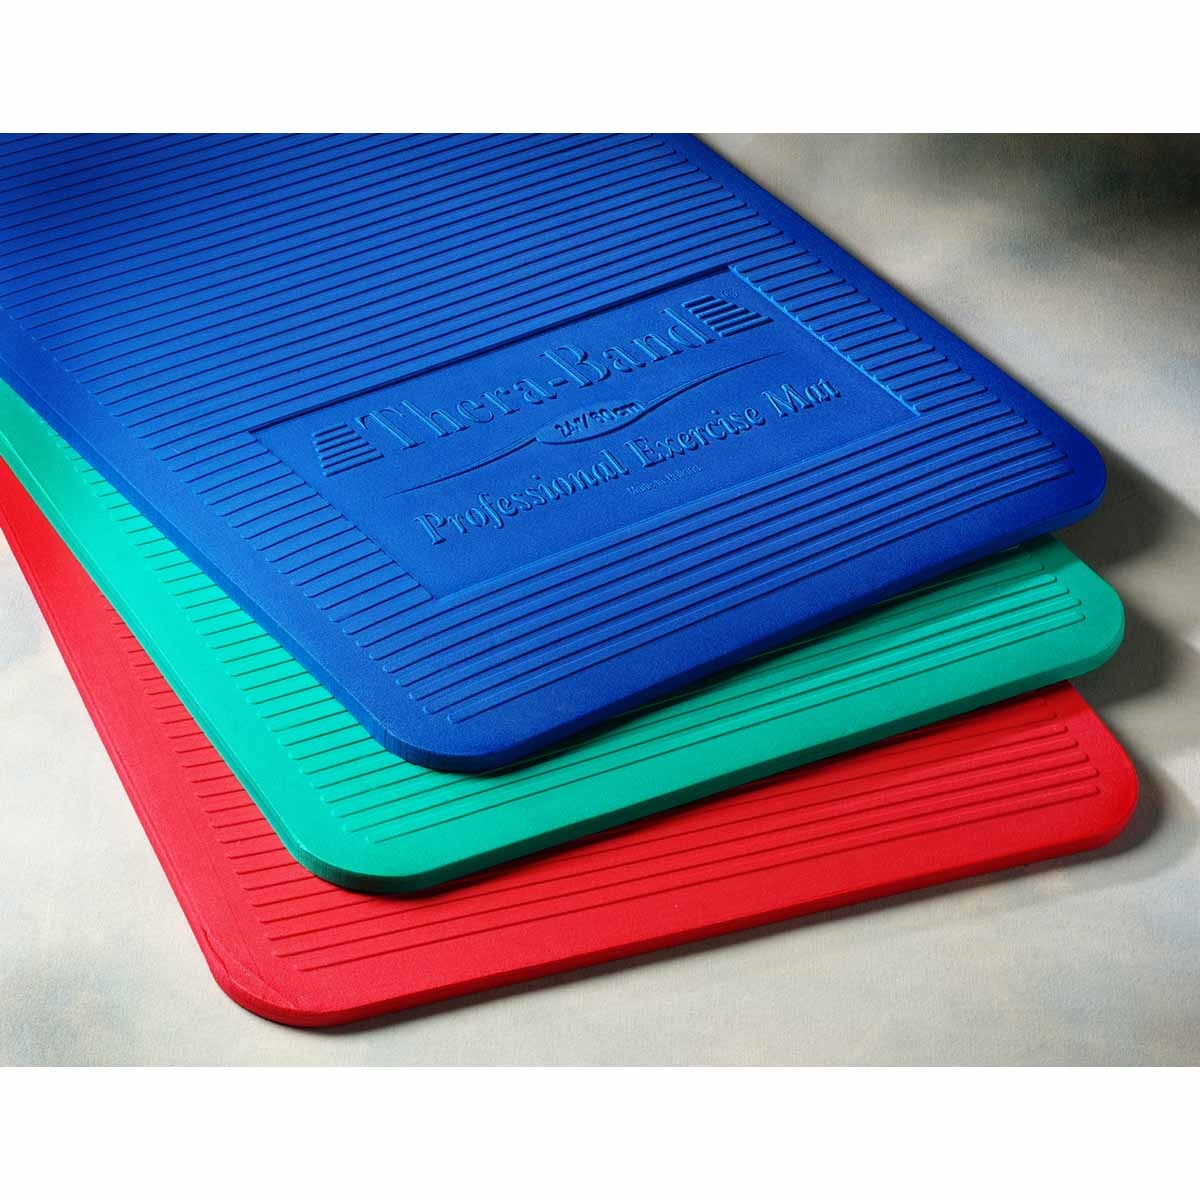 flipboard mats floor top mat mariahlolas best reviews exercise on